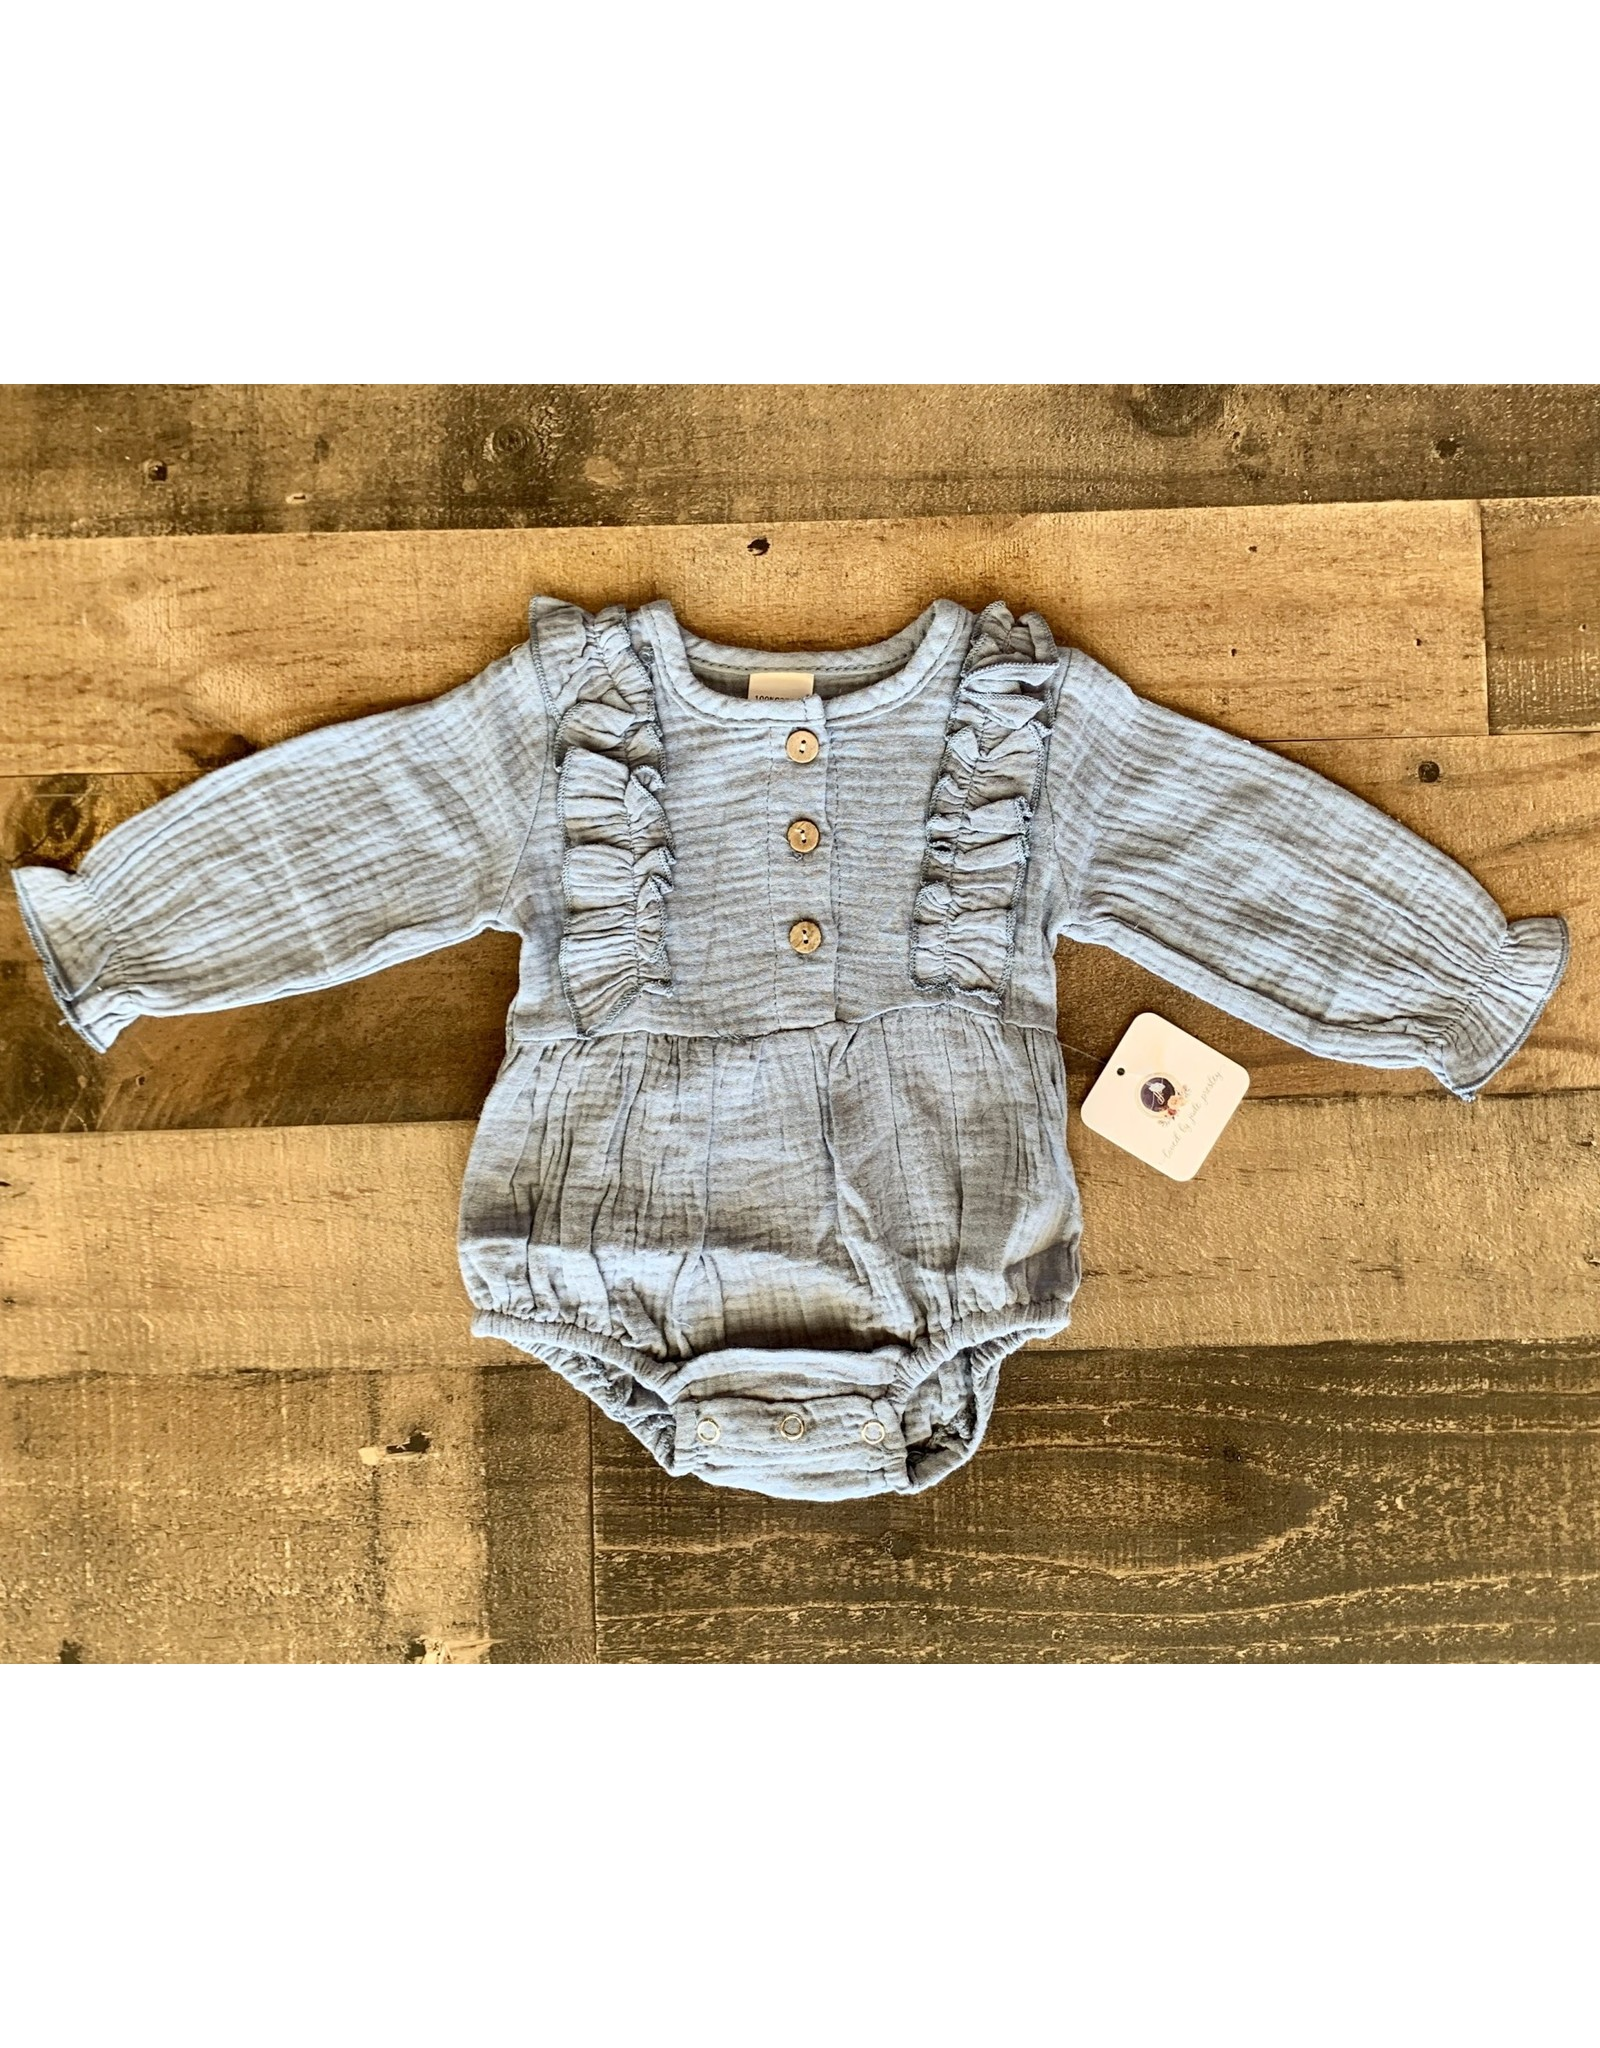 loved by Jade Presley loved by jade presley- Tori L/S Romper: Baby Blue